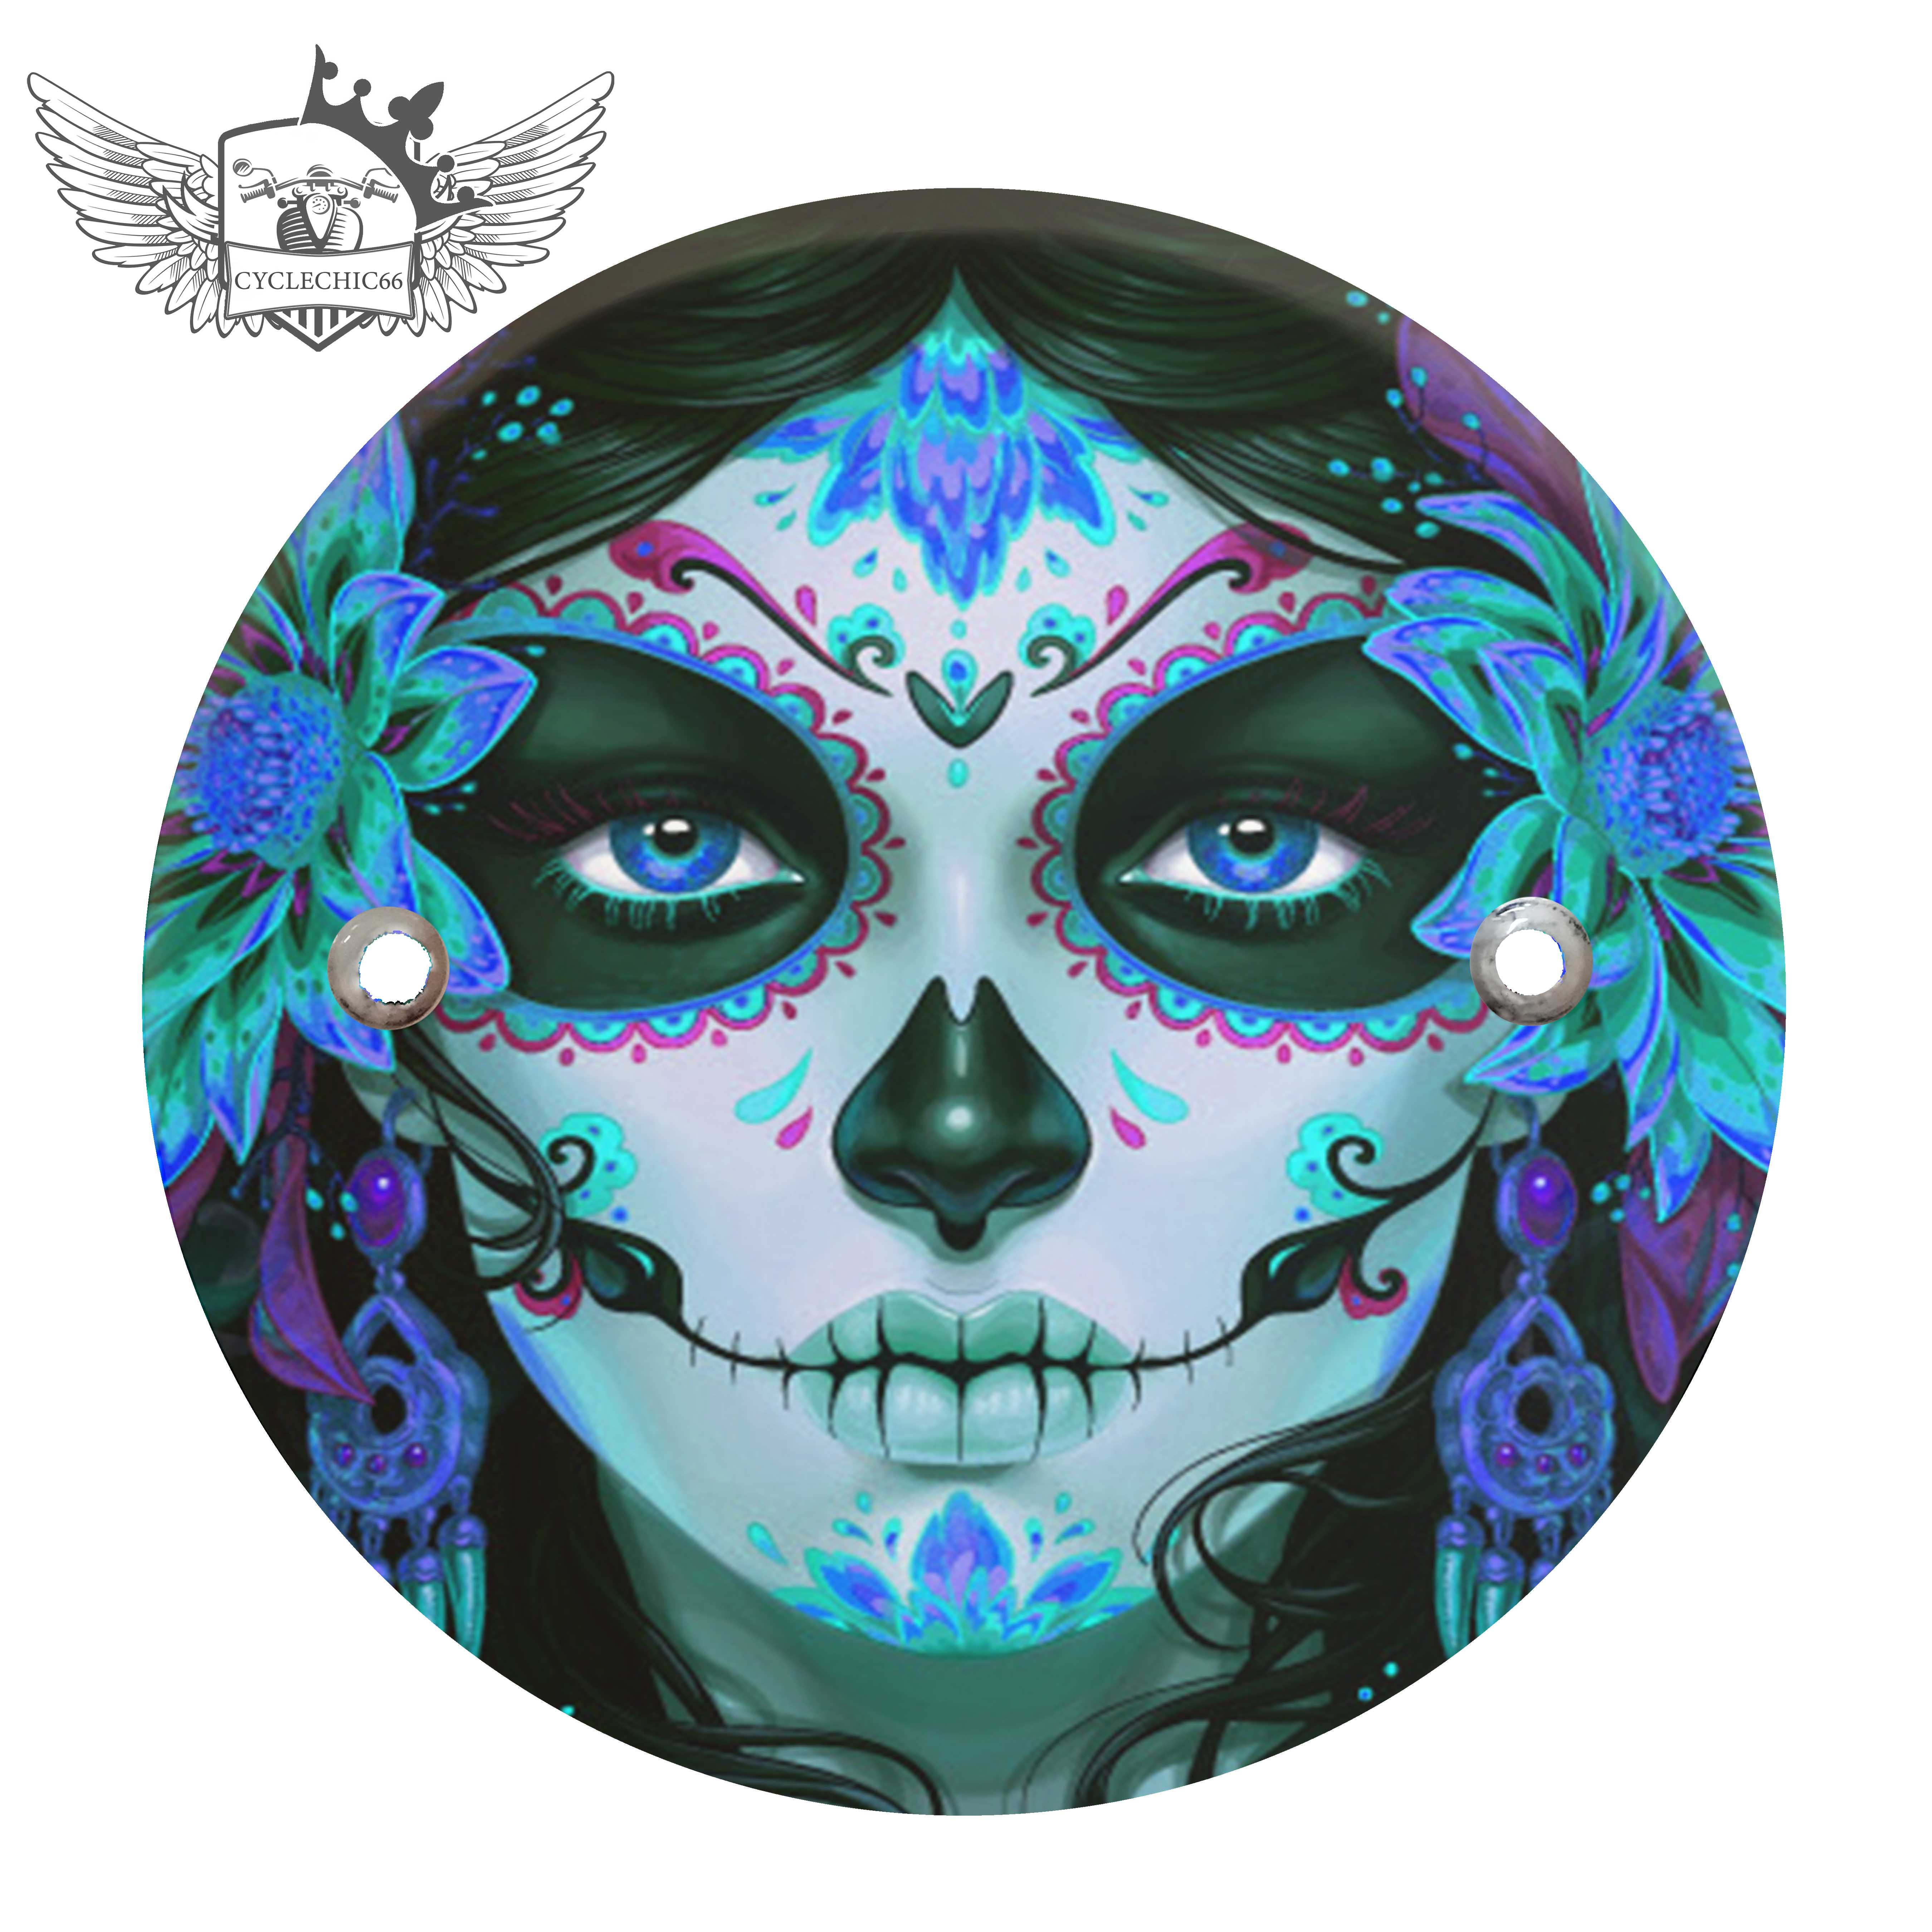 Victory Derby Cover - Candy Sugar Skull Blue Peony